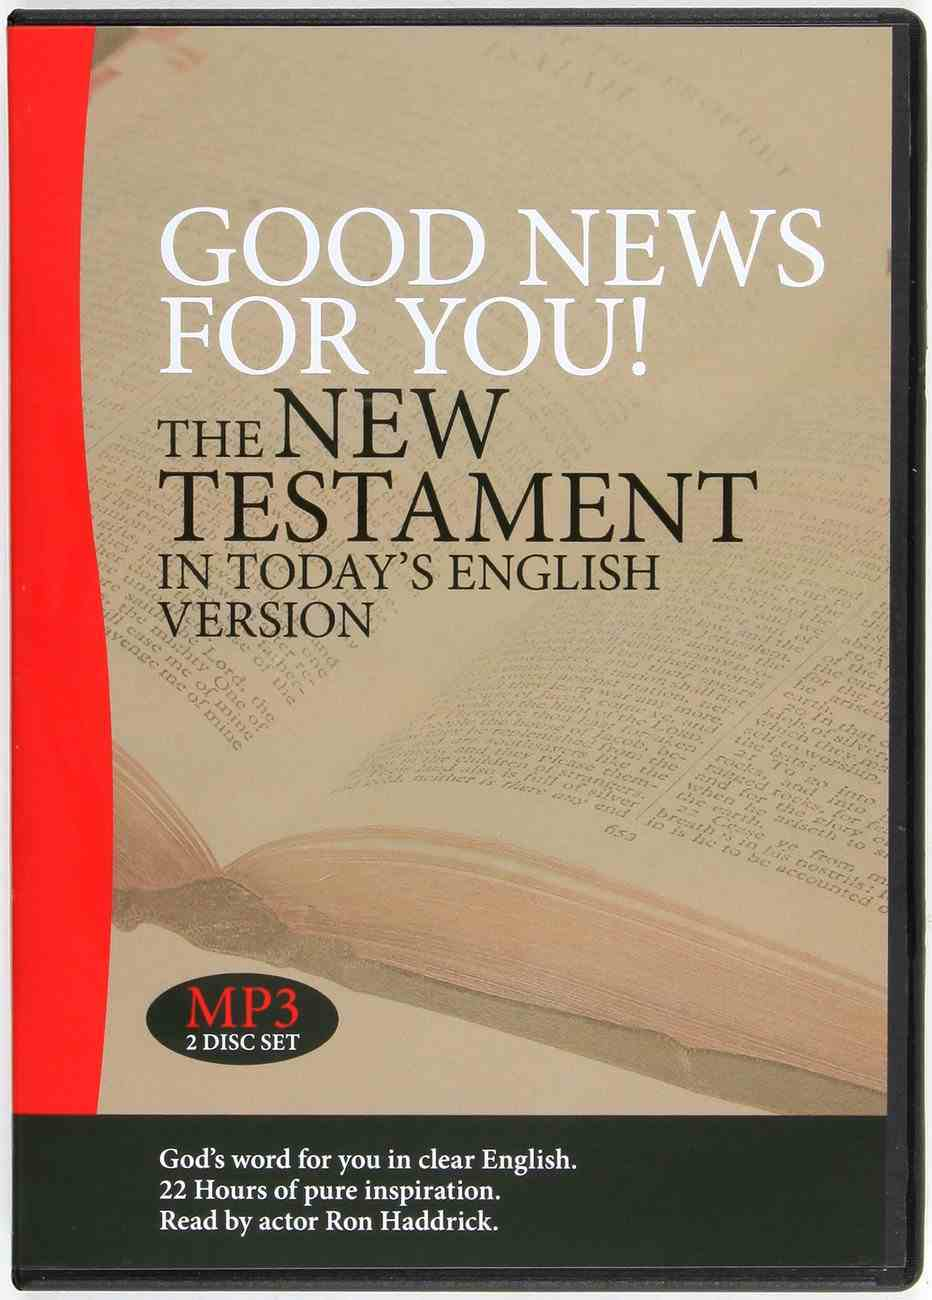 GNB Good News For You! the New Testament in Today's Engligh Version MP3 CD